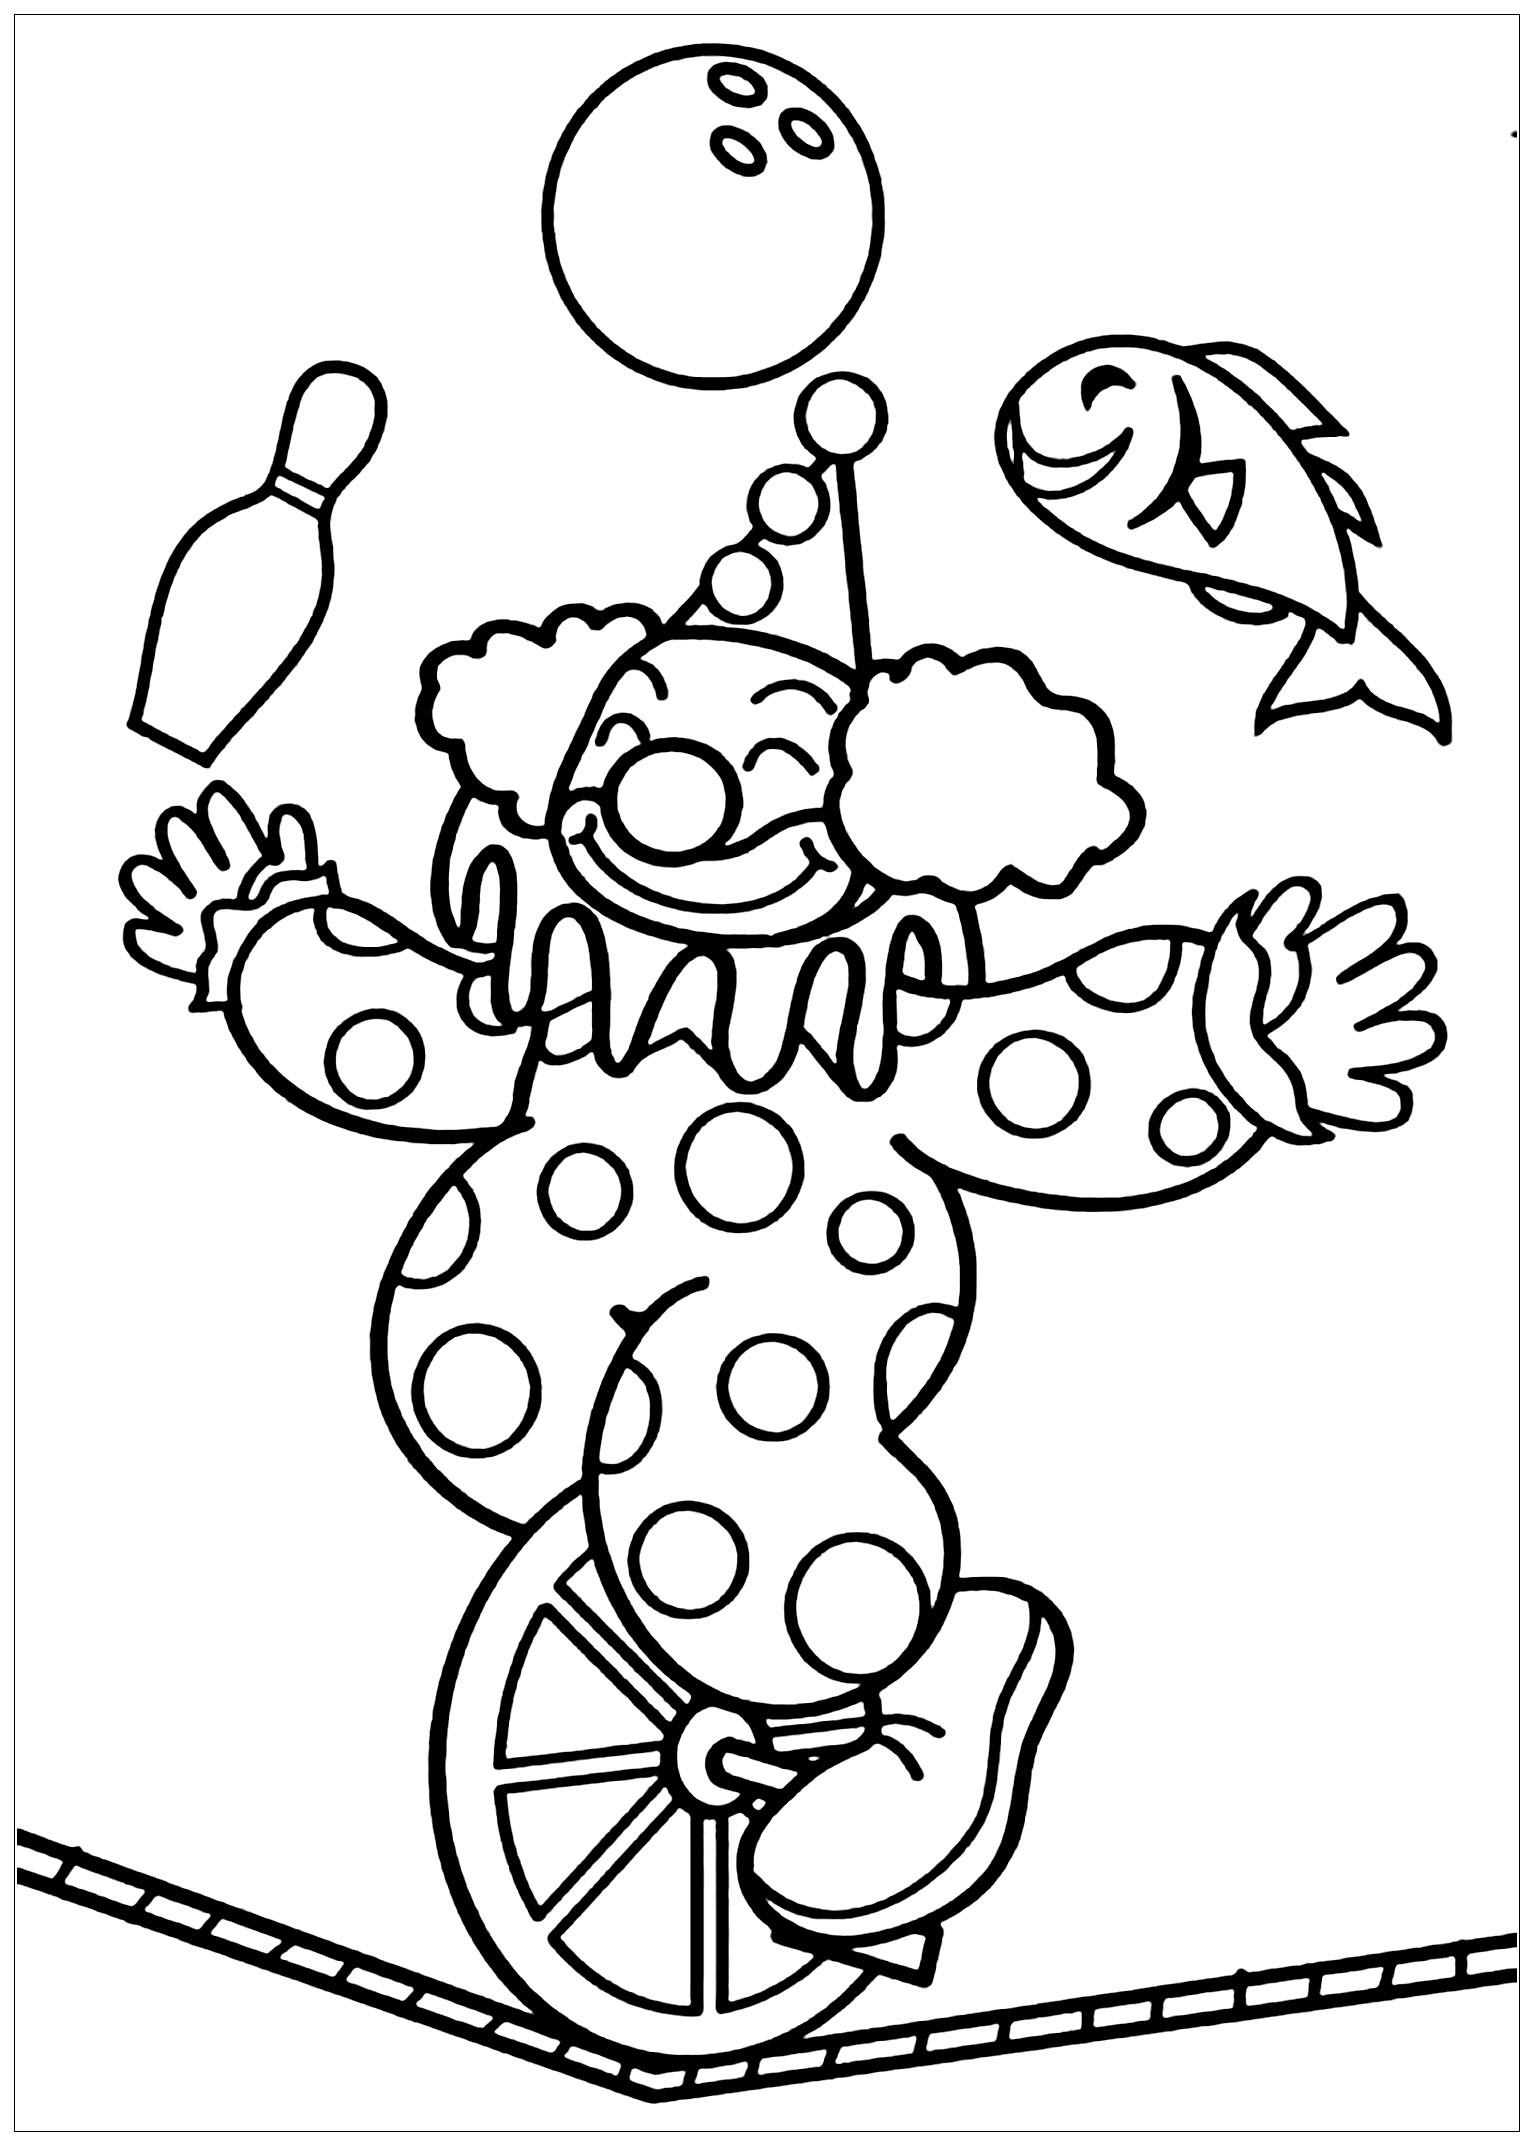 Circus To Print Circus Kids Coloring Pages